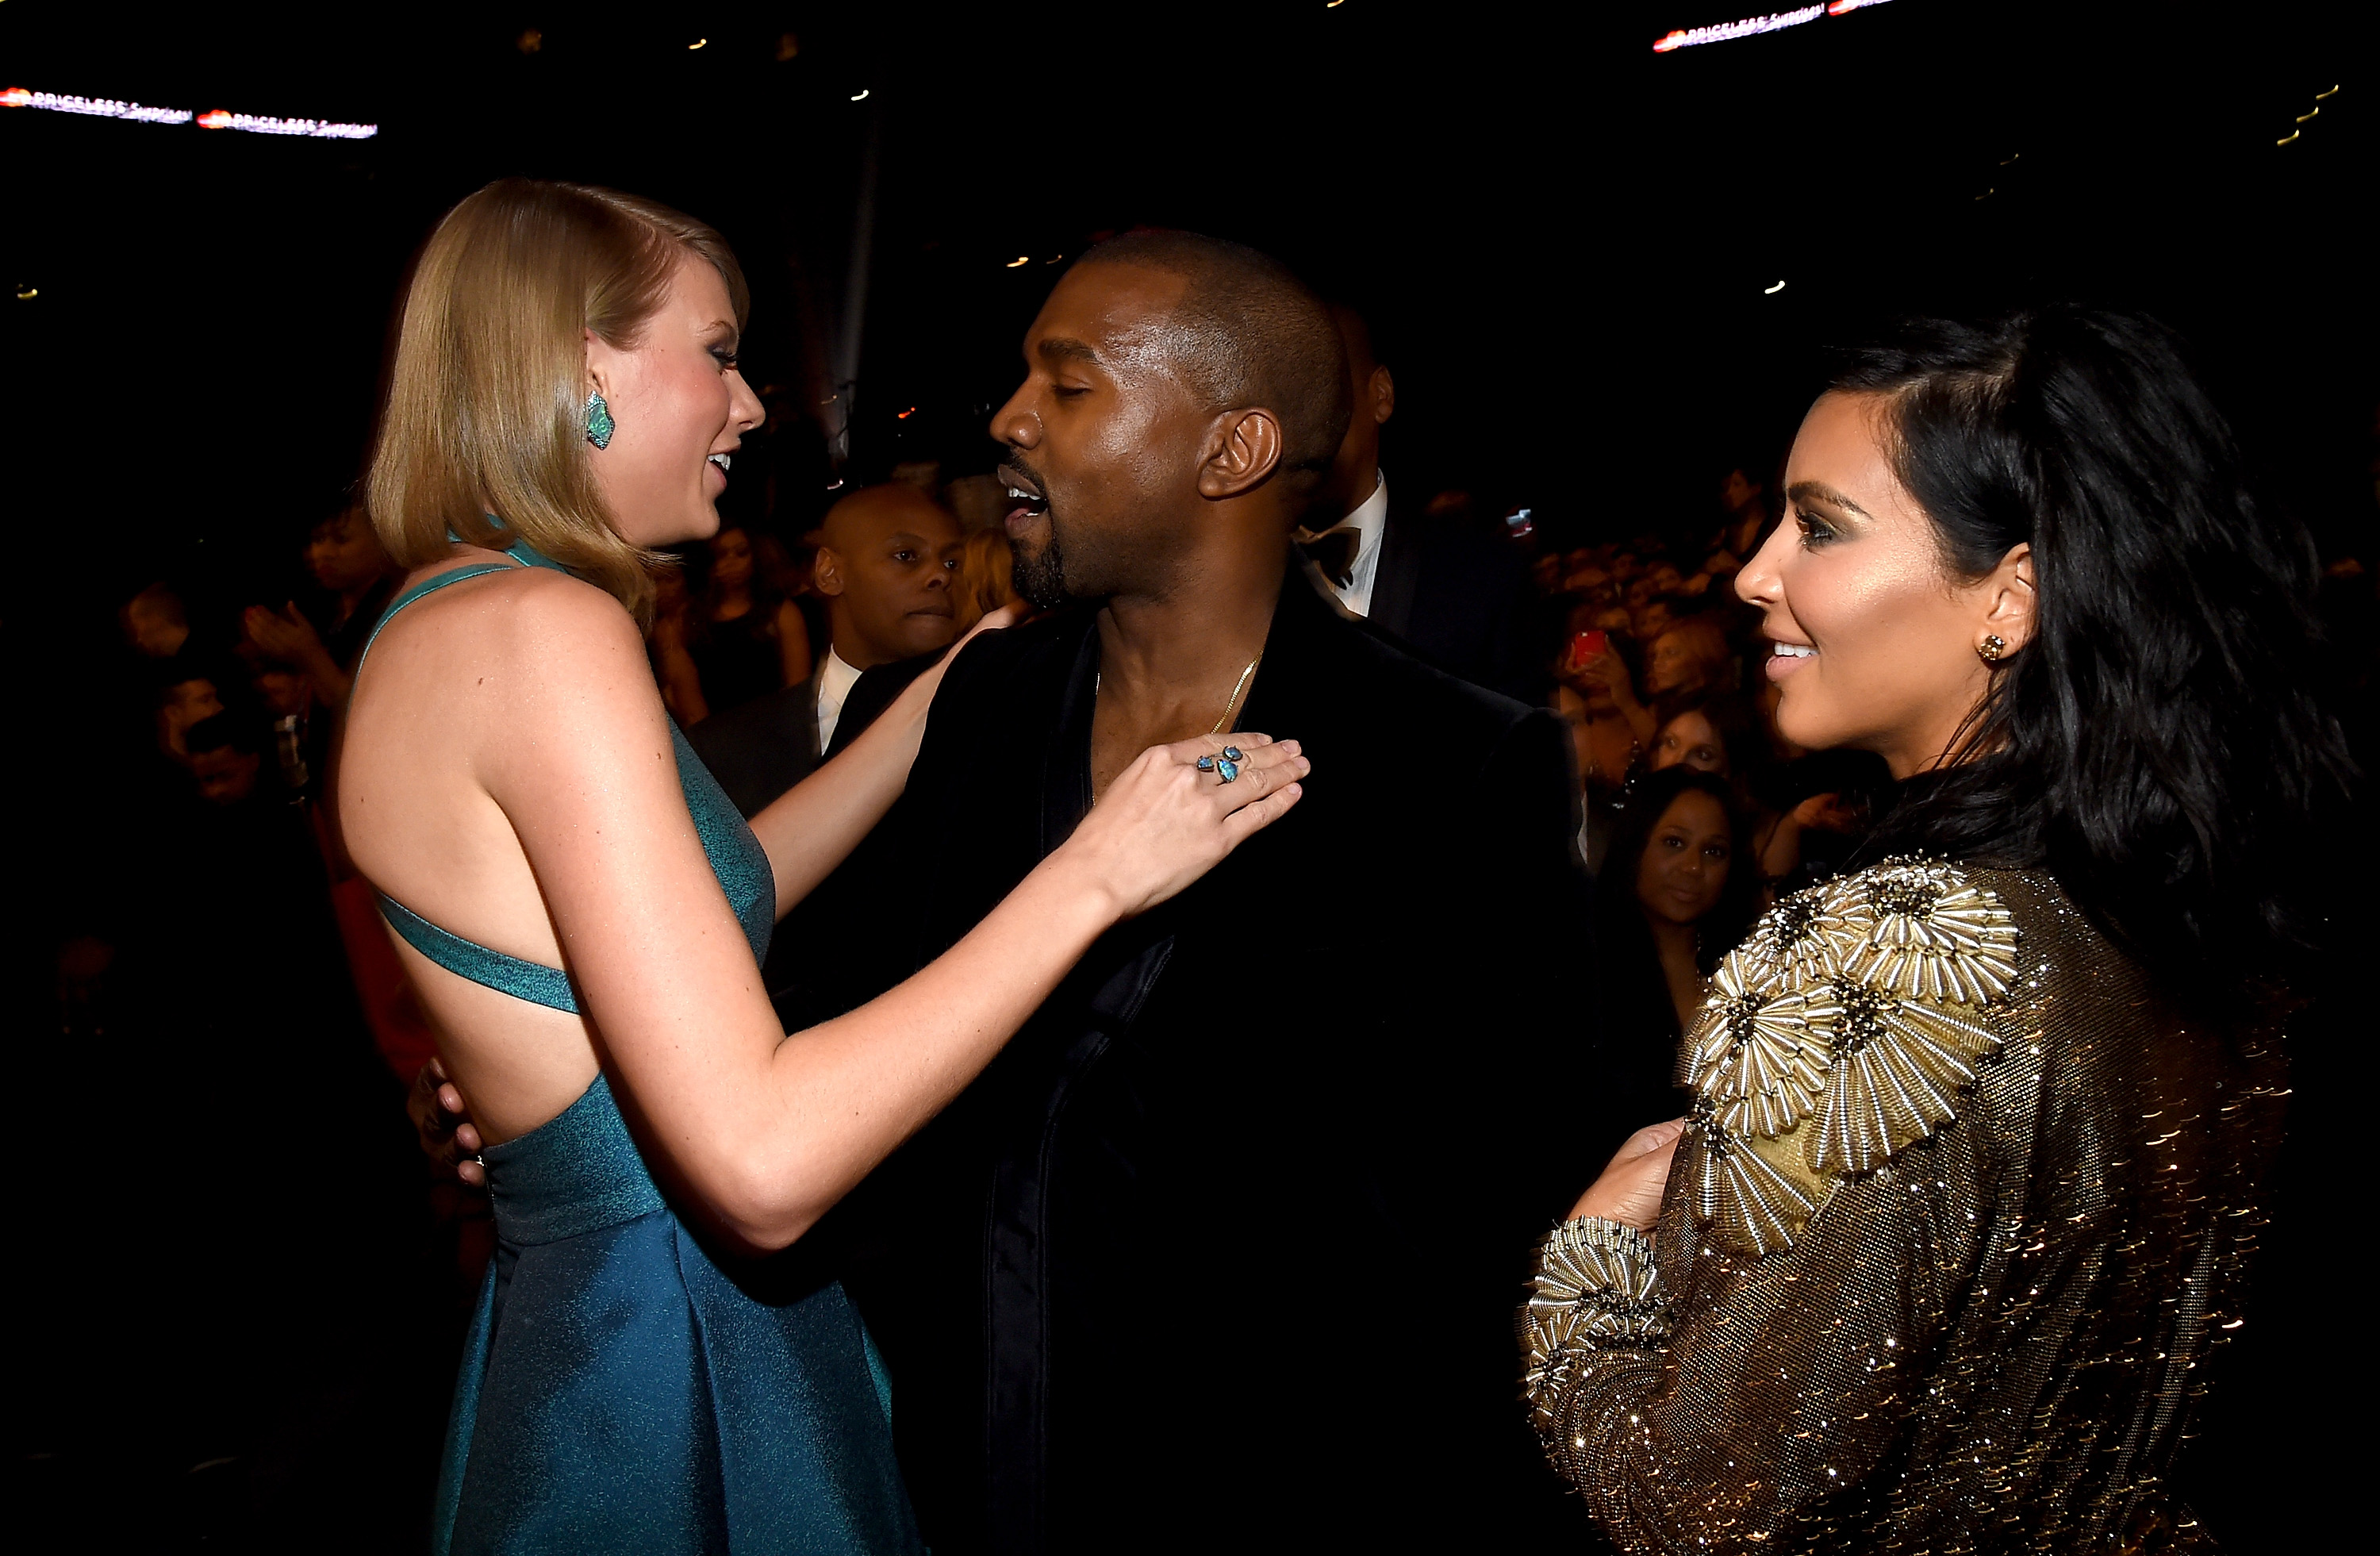 GettyImages 463036782 Kim Kardashian Just Exposed Taylor Swift Big Time On Snapchat